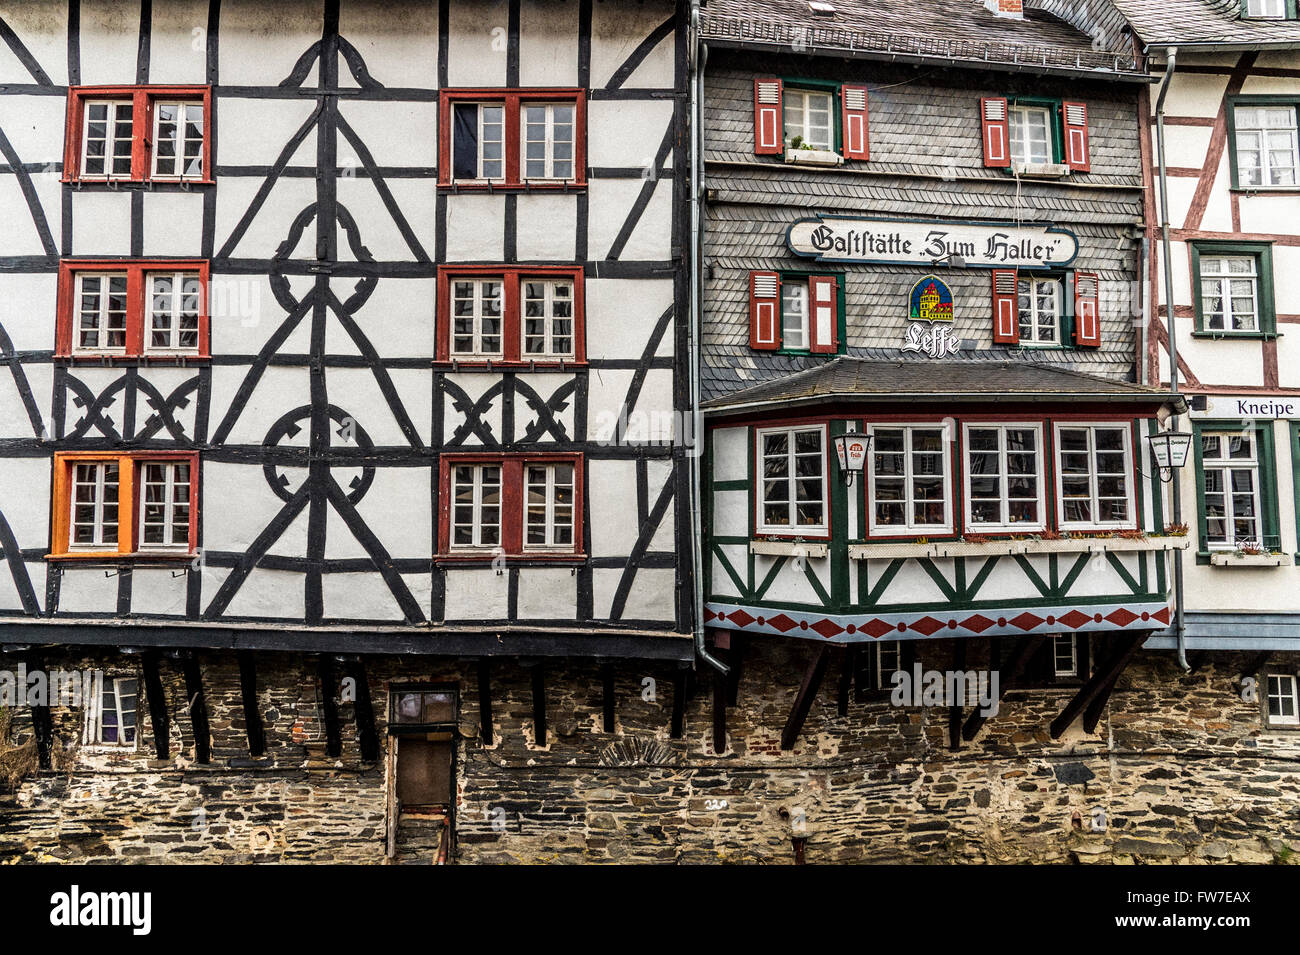 Street scene in the old medieval town of Monschau in northwest Germany, - Stock Image